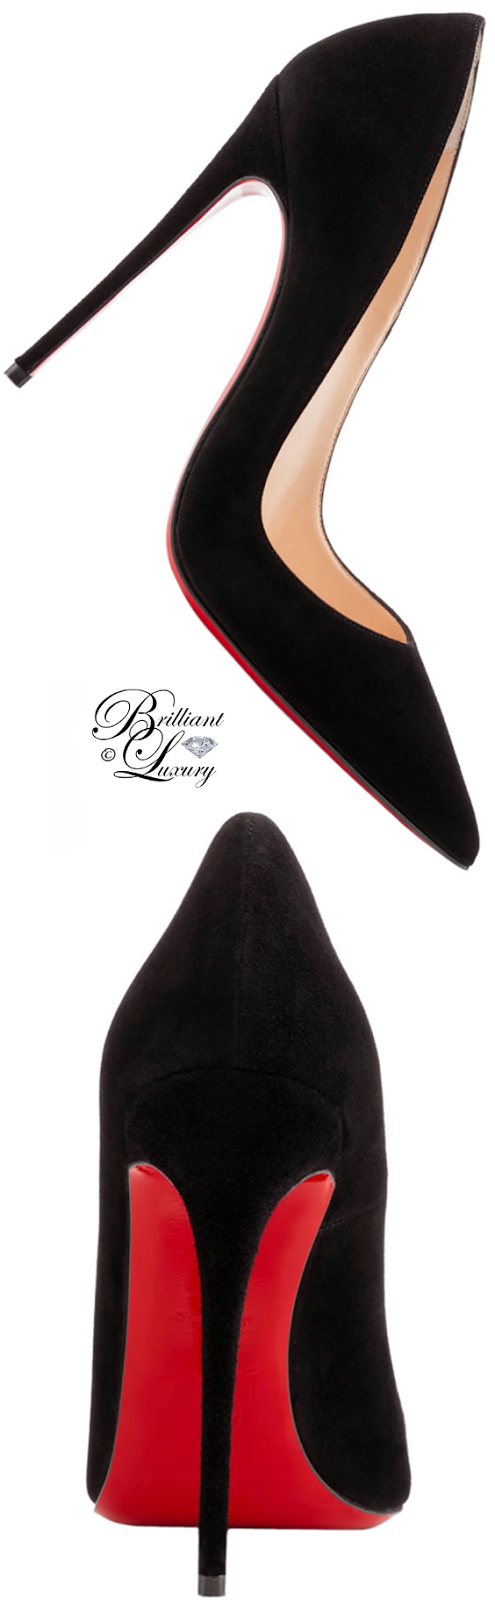 Brilliant Luxury ♦ Christian Louboutin So Kate Classic Patent Leather Red Sole Pump